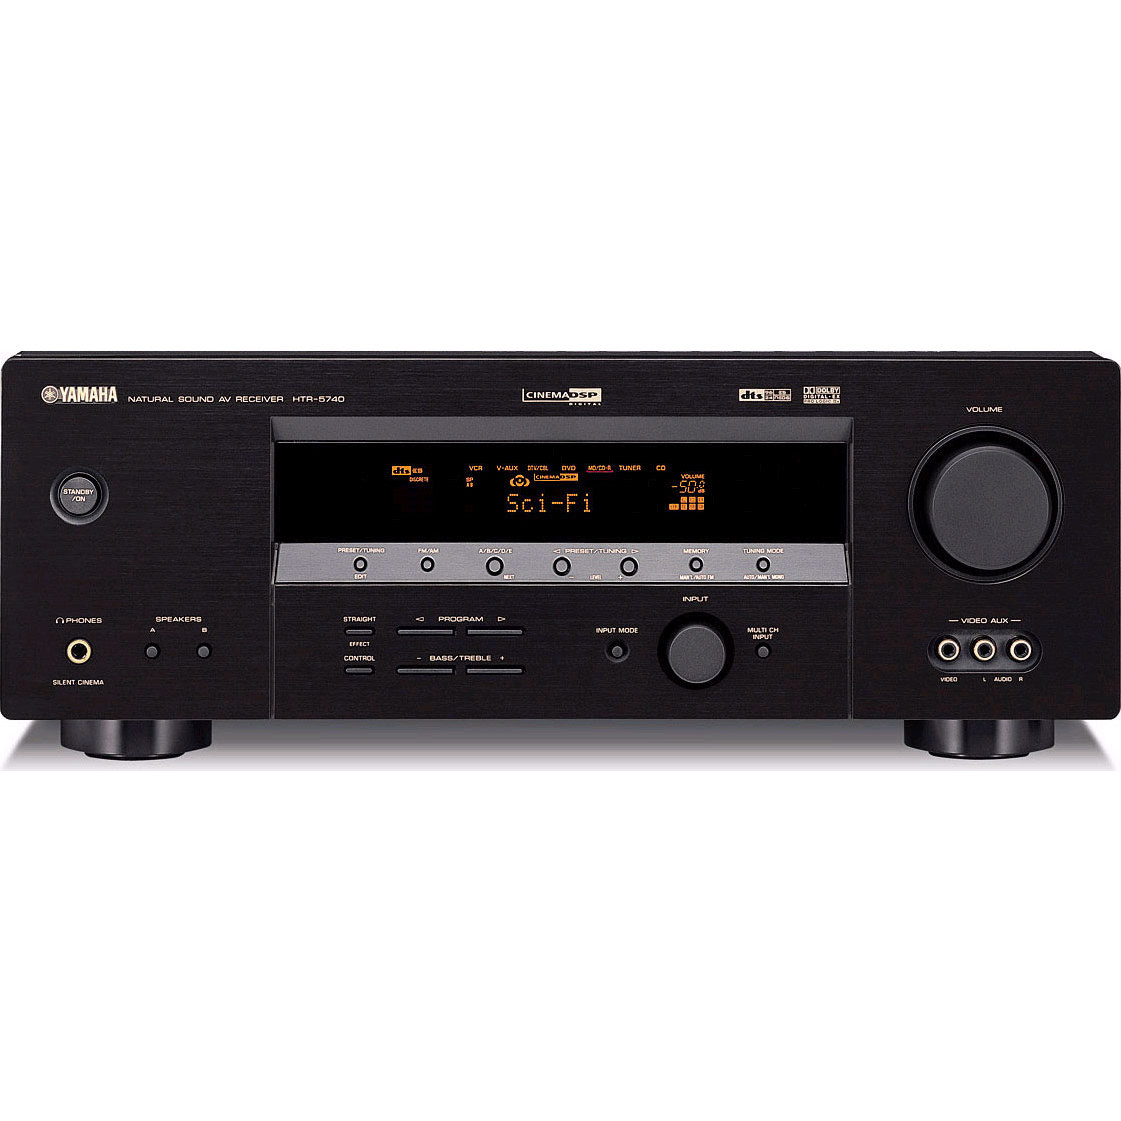 Htr 3064 htr av receivers audio visual products yamaha for Yamaha audio customer service